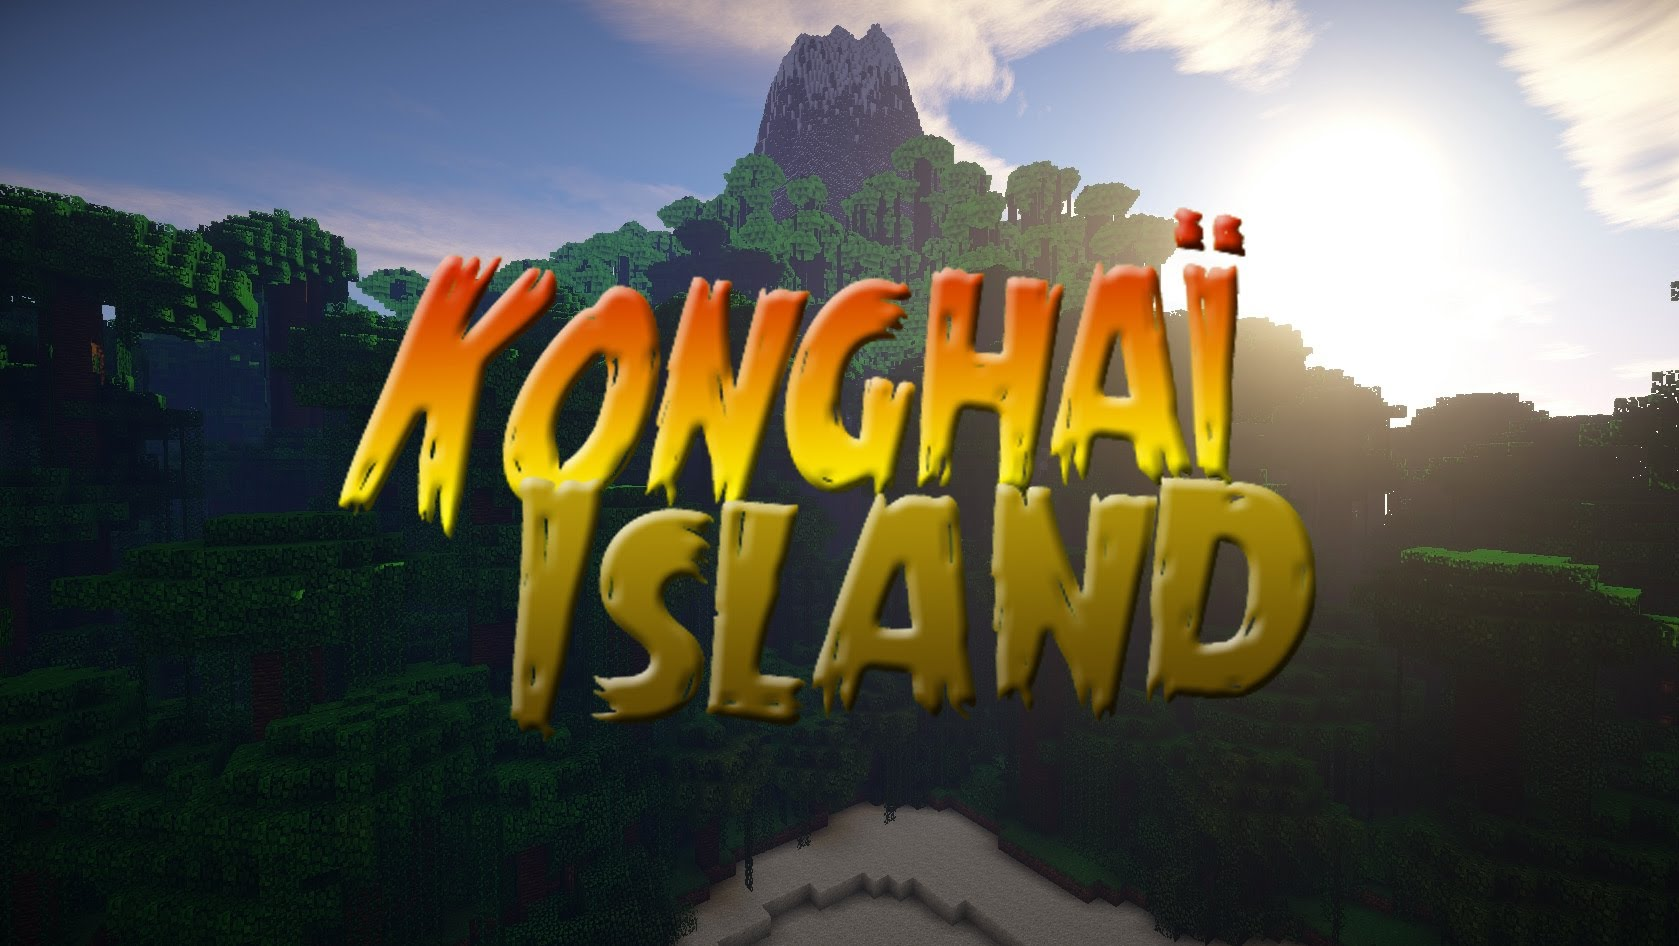 Konghaï Island Map 1.12.2/1.11.2 for Minecraft - 9Minecraft.Net